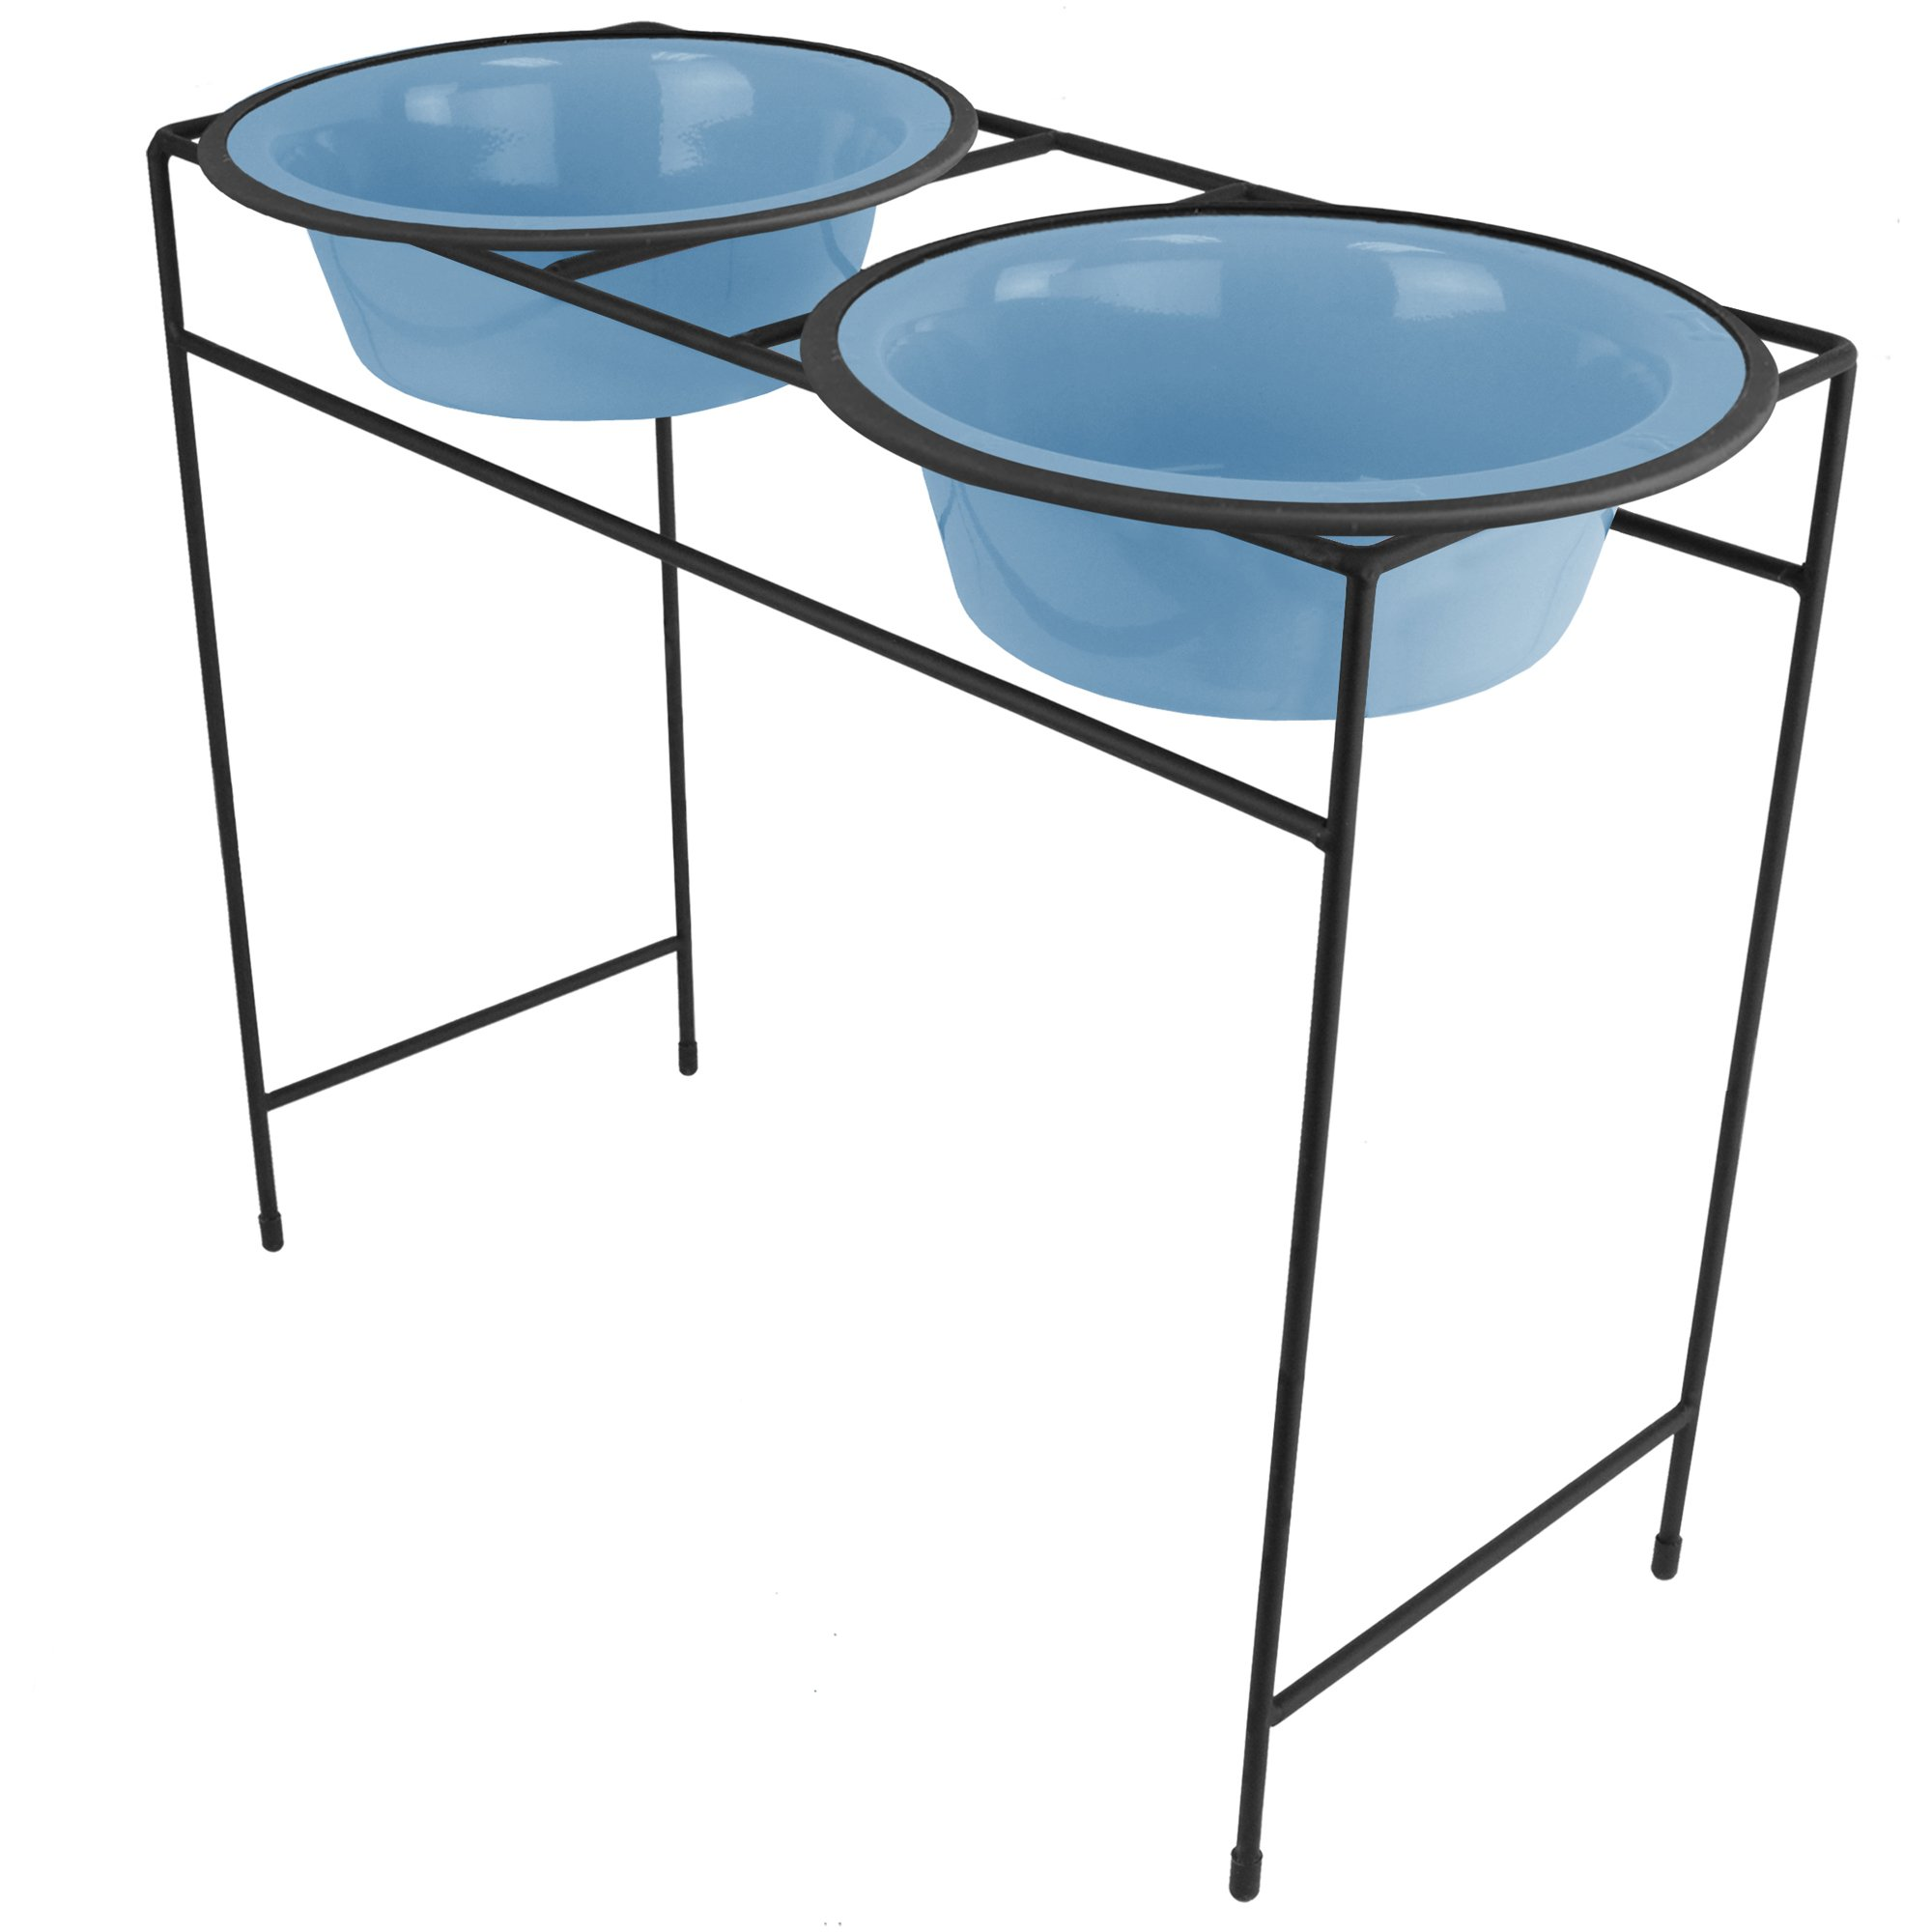 Platinum Pets Modern Double Diner Feeder with Stainless Steel Cat/Dog Bowls by Platinum Pets